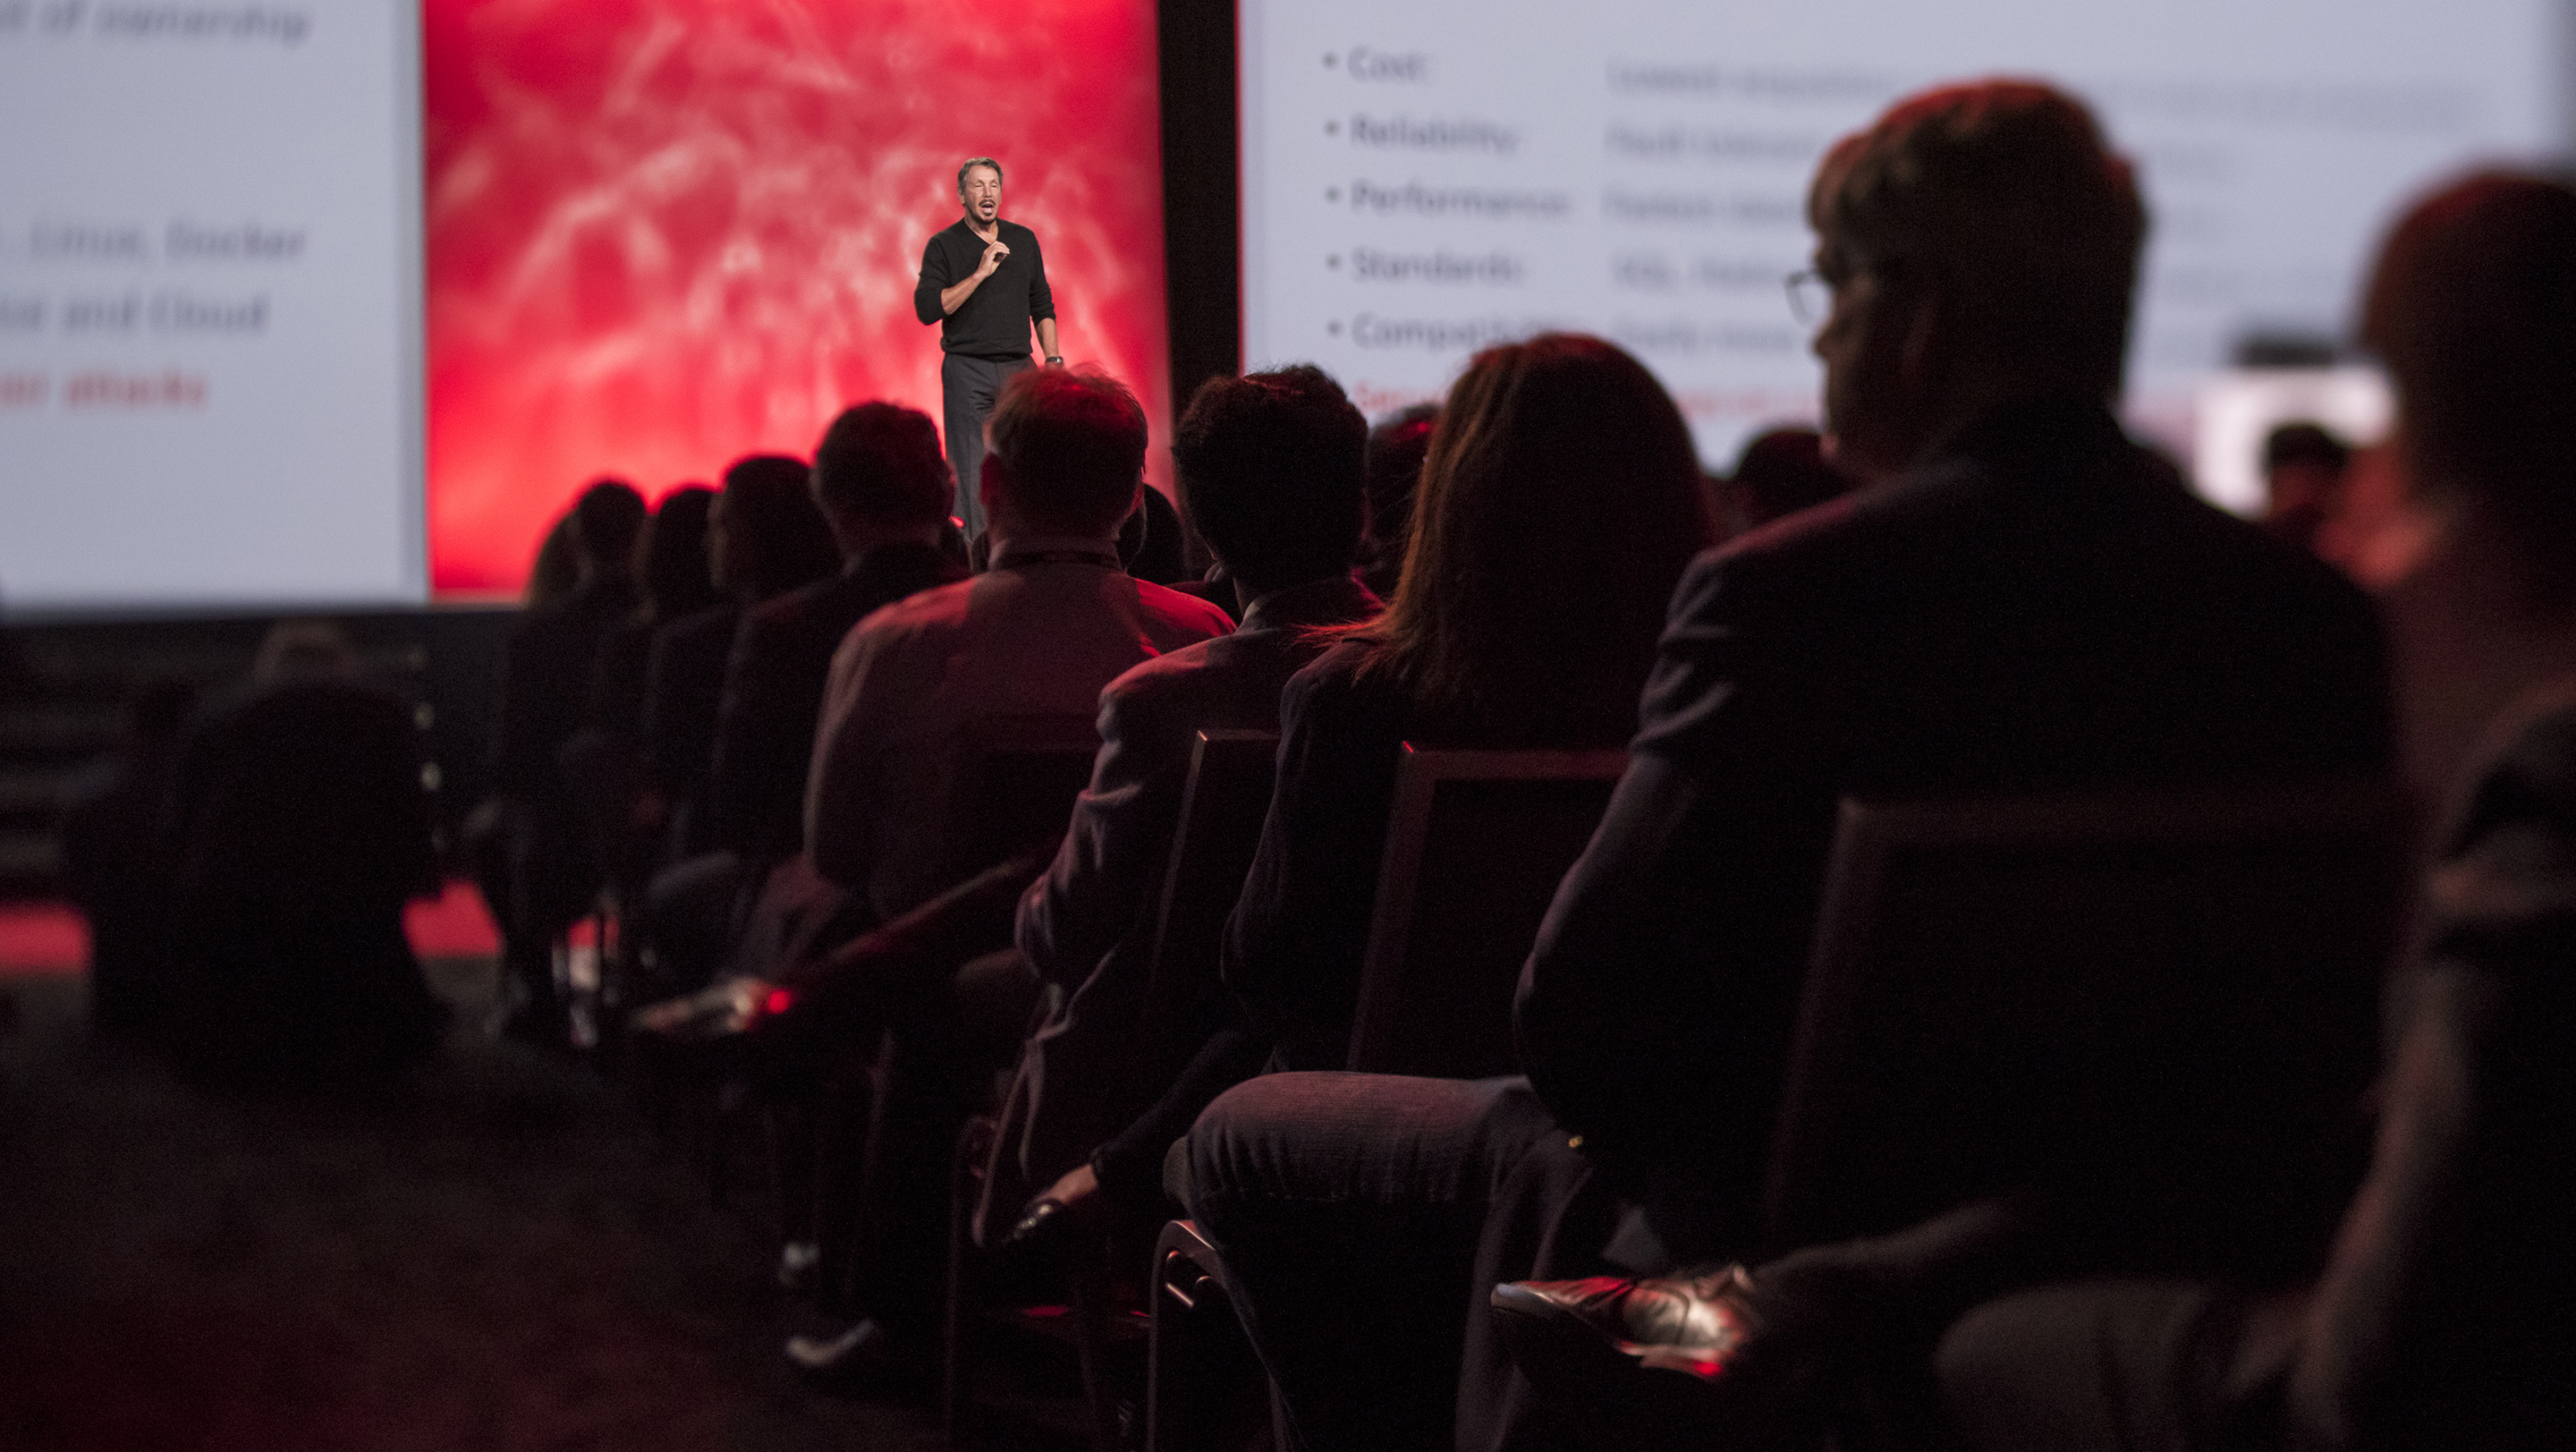 Key Speakers At The Oracle OpenWorld 2015 Conference